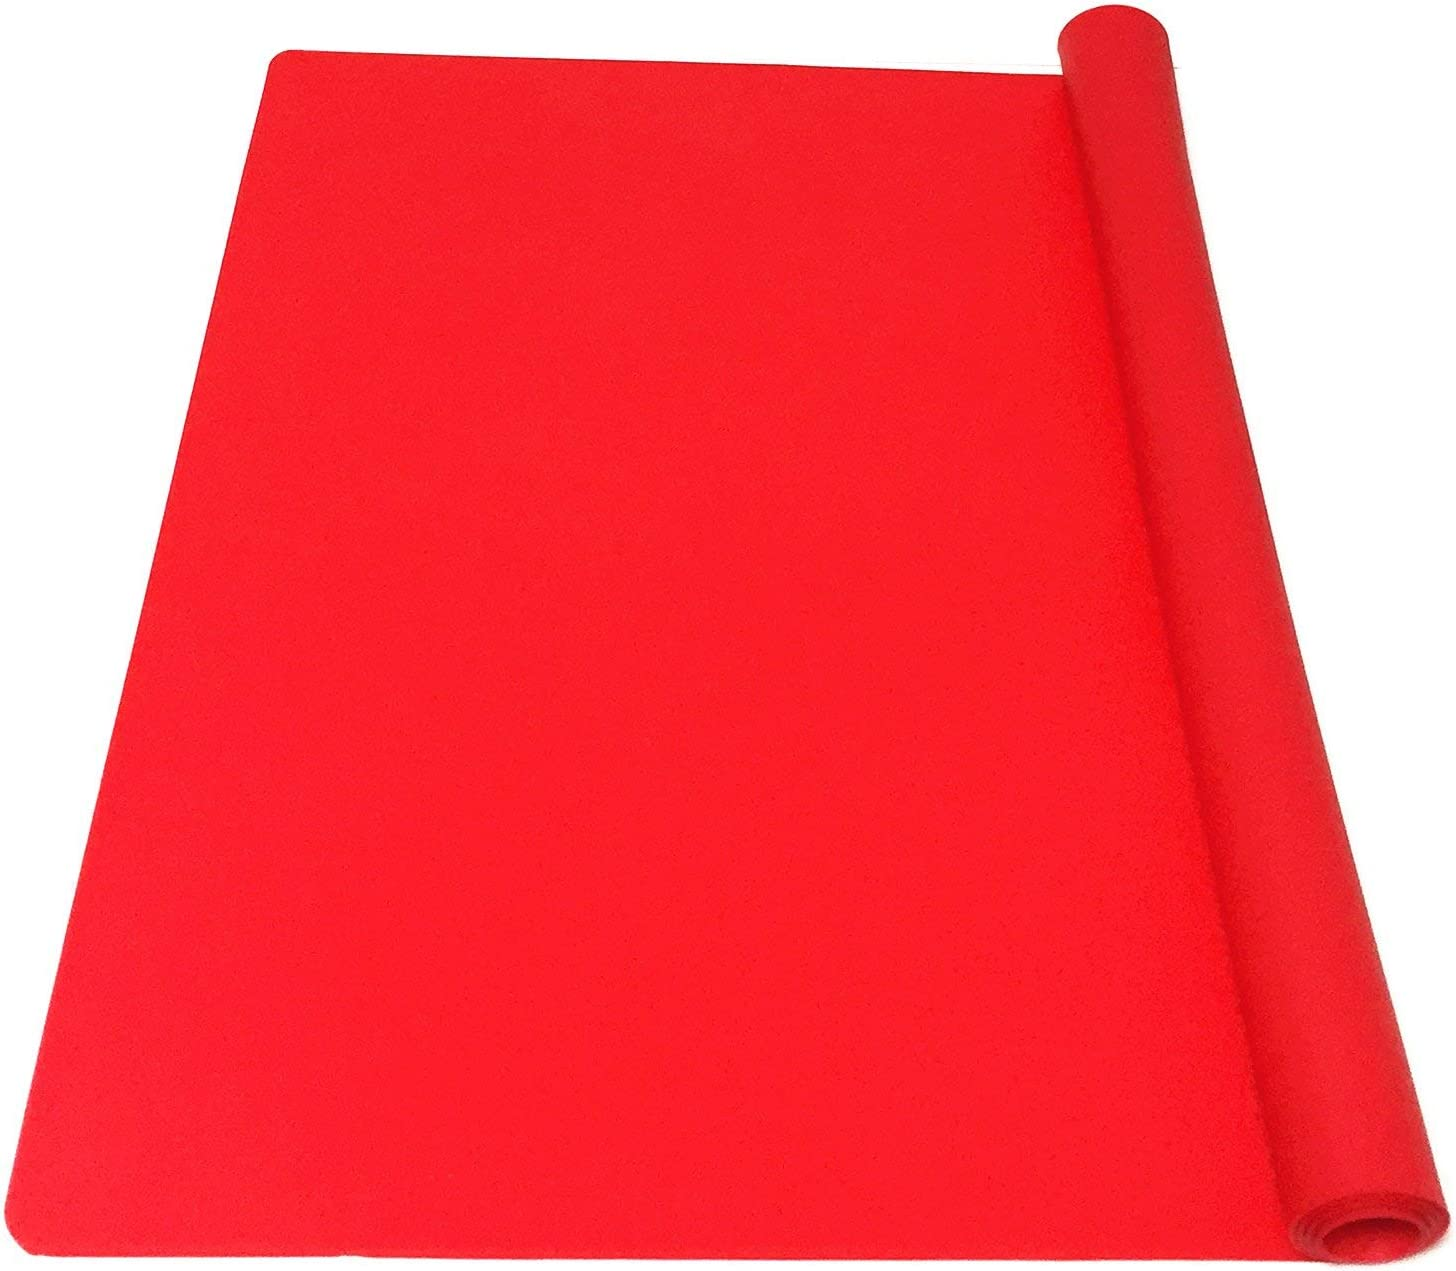 EPHome Extra Large Multipurpose Silicone Nonstick Pastry Mat, Heat Resistant Nonskid Table Mat, Countertop Protector, 23.6''15.77'' (Red)